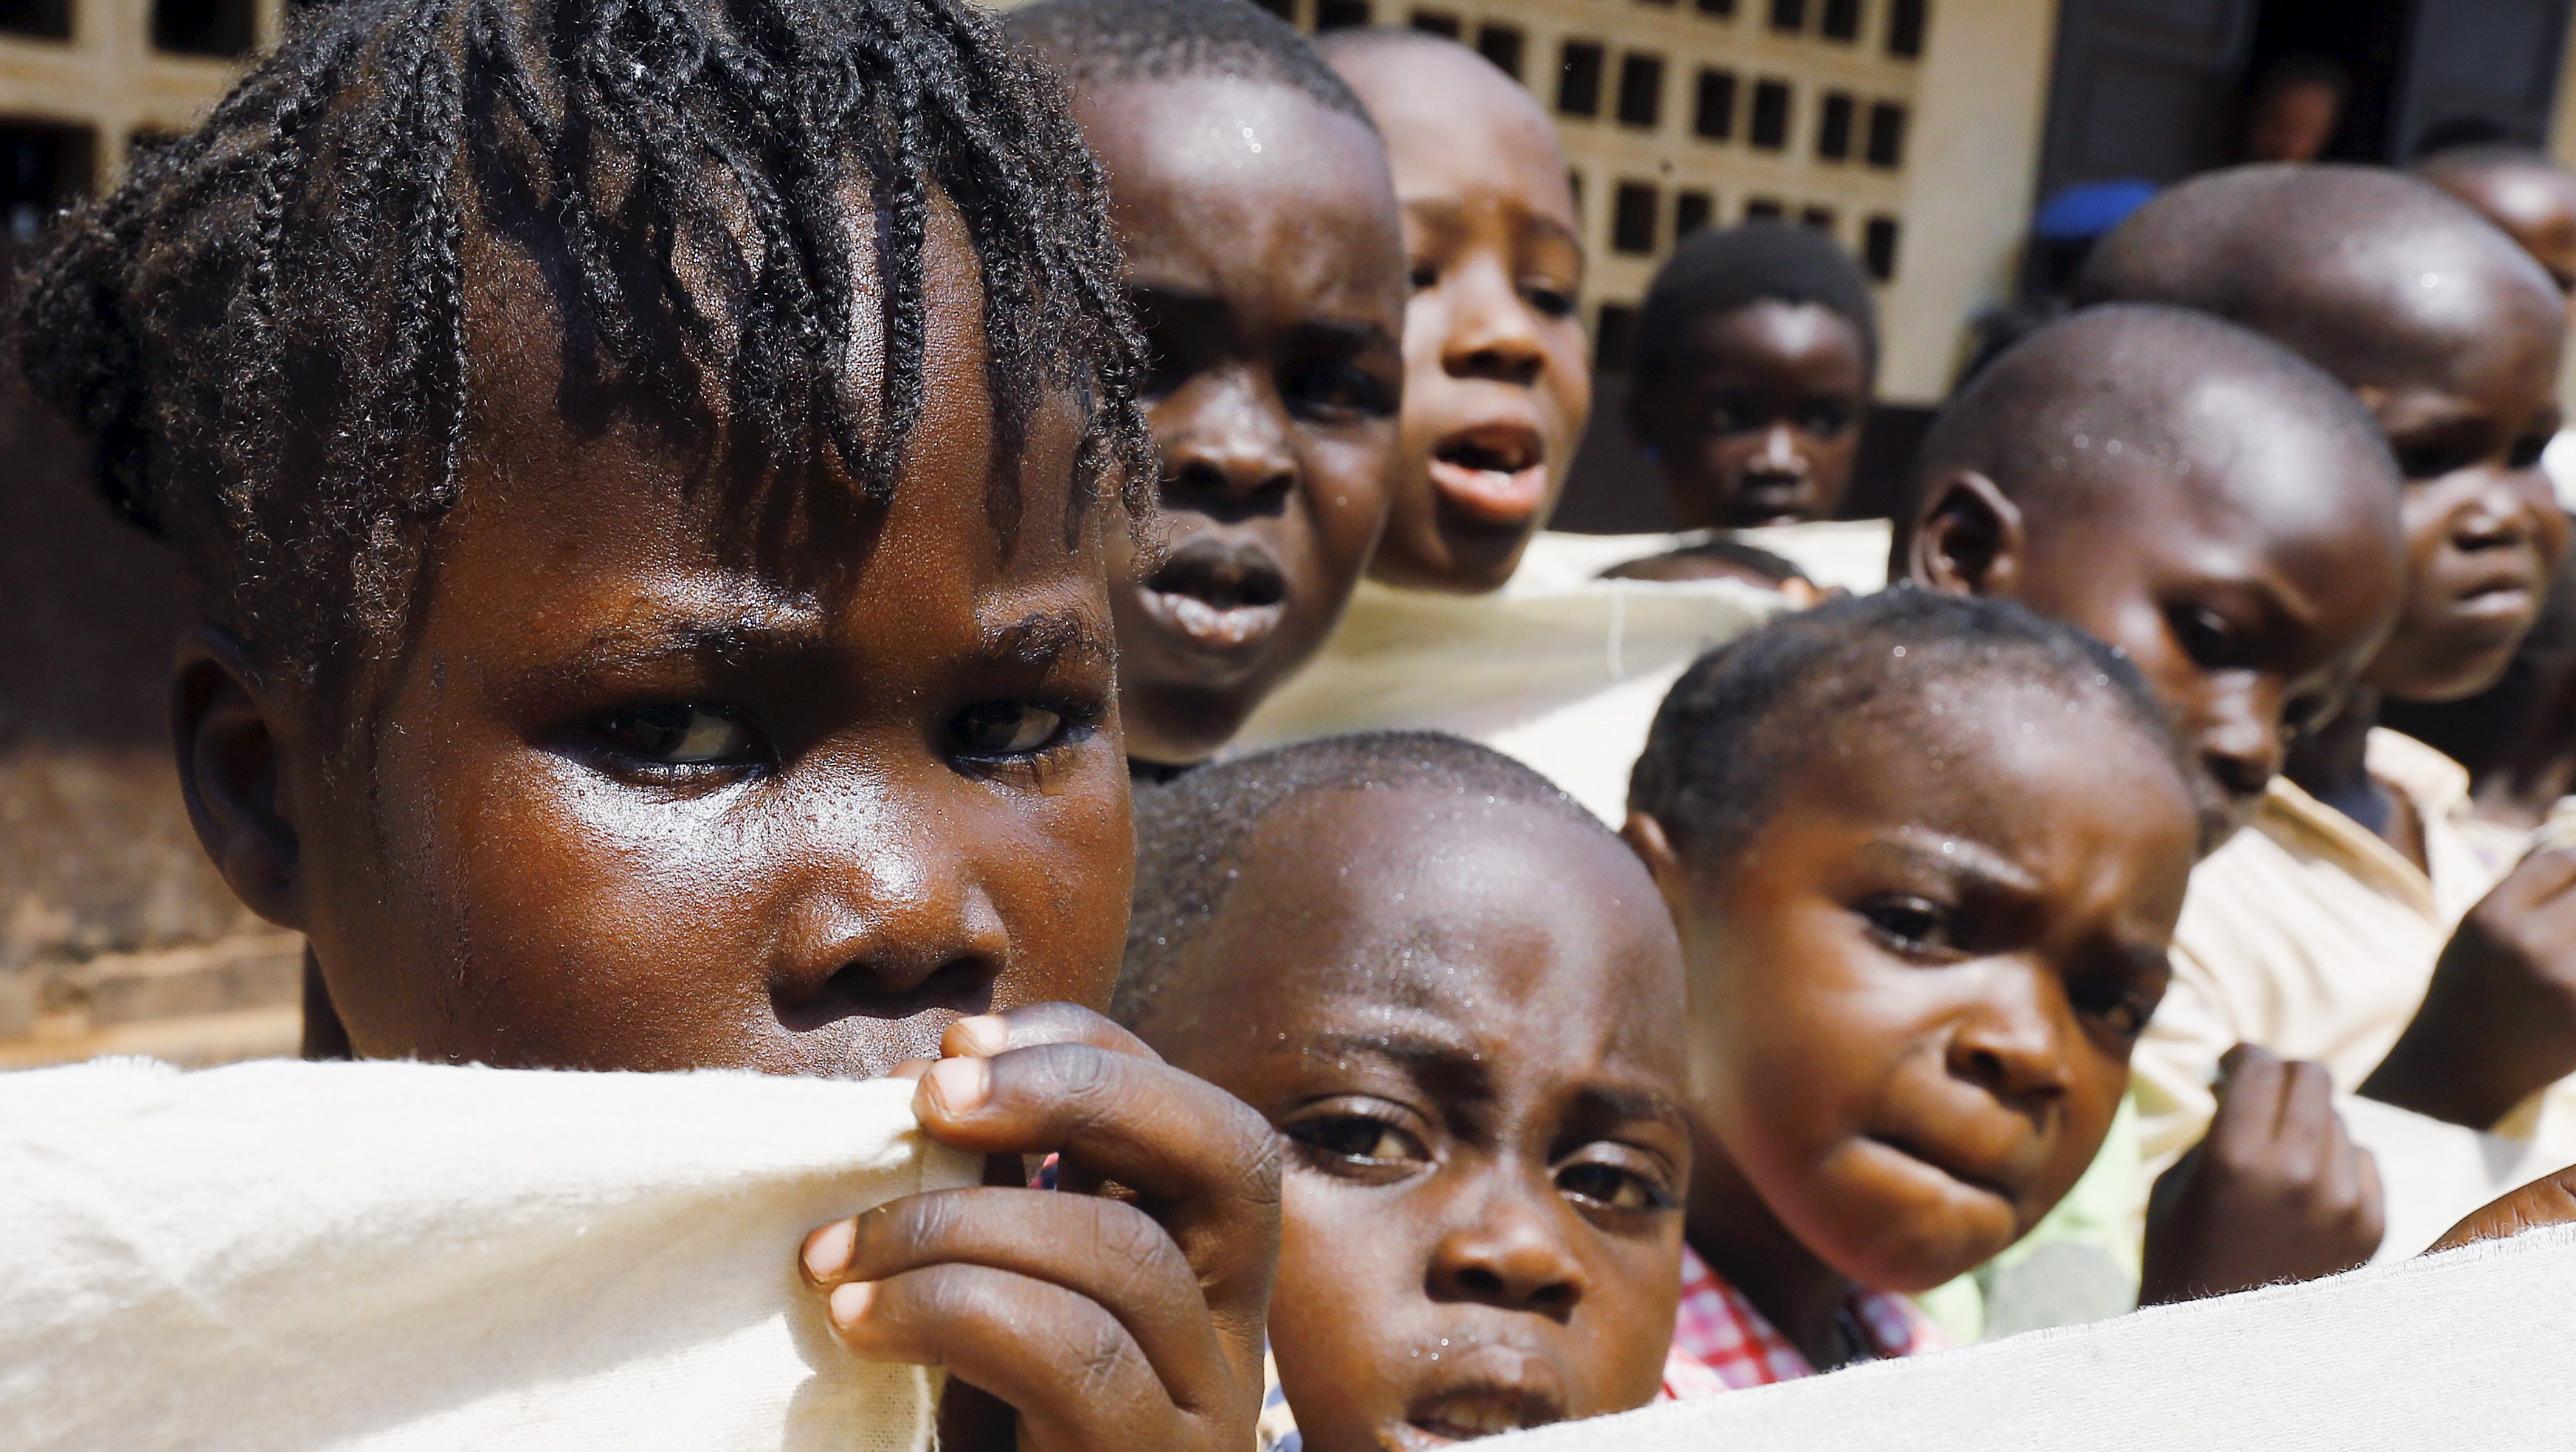 Children look on before Pope Francis' visit to the refugee camp of Saint Sauveur in the capital Bangui